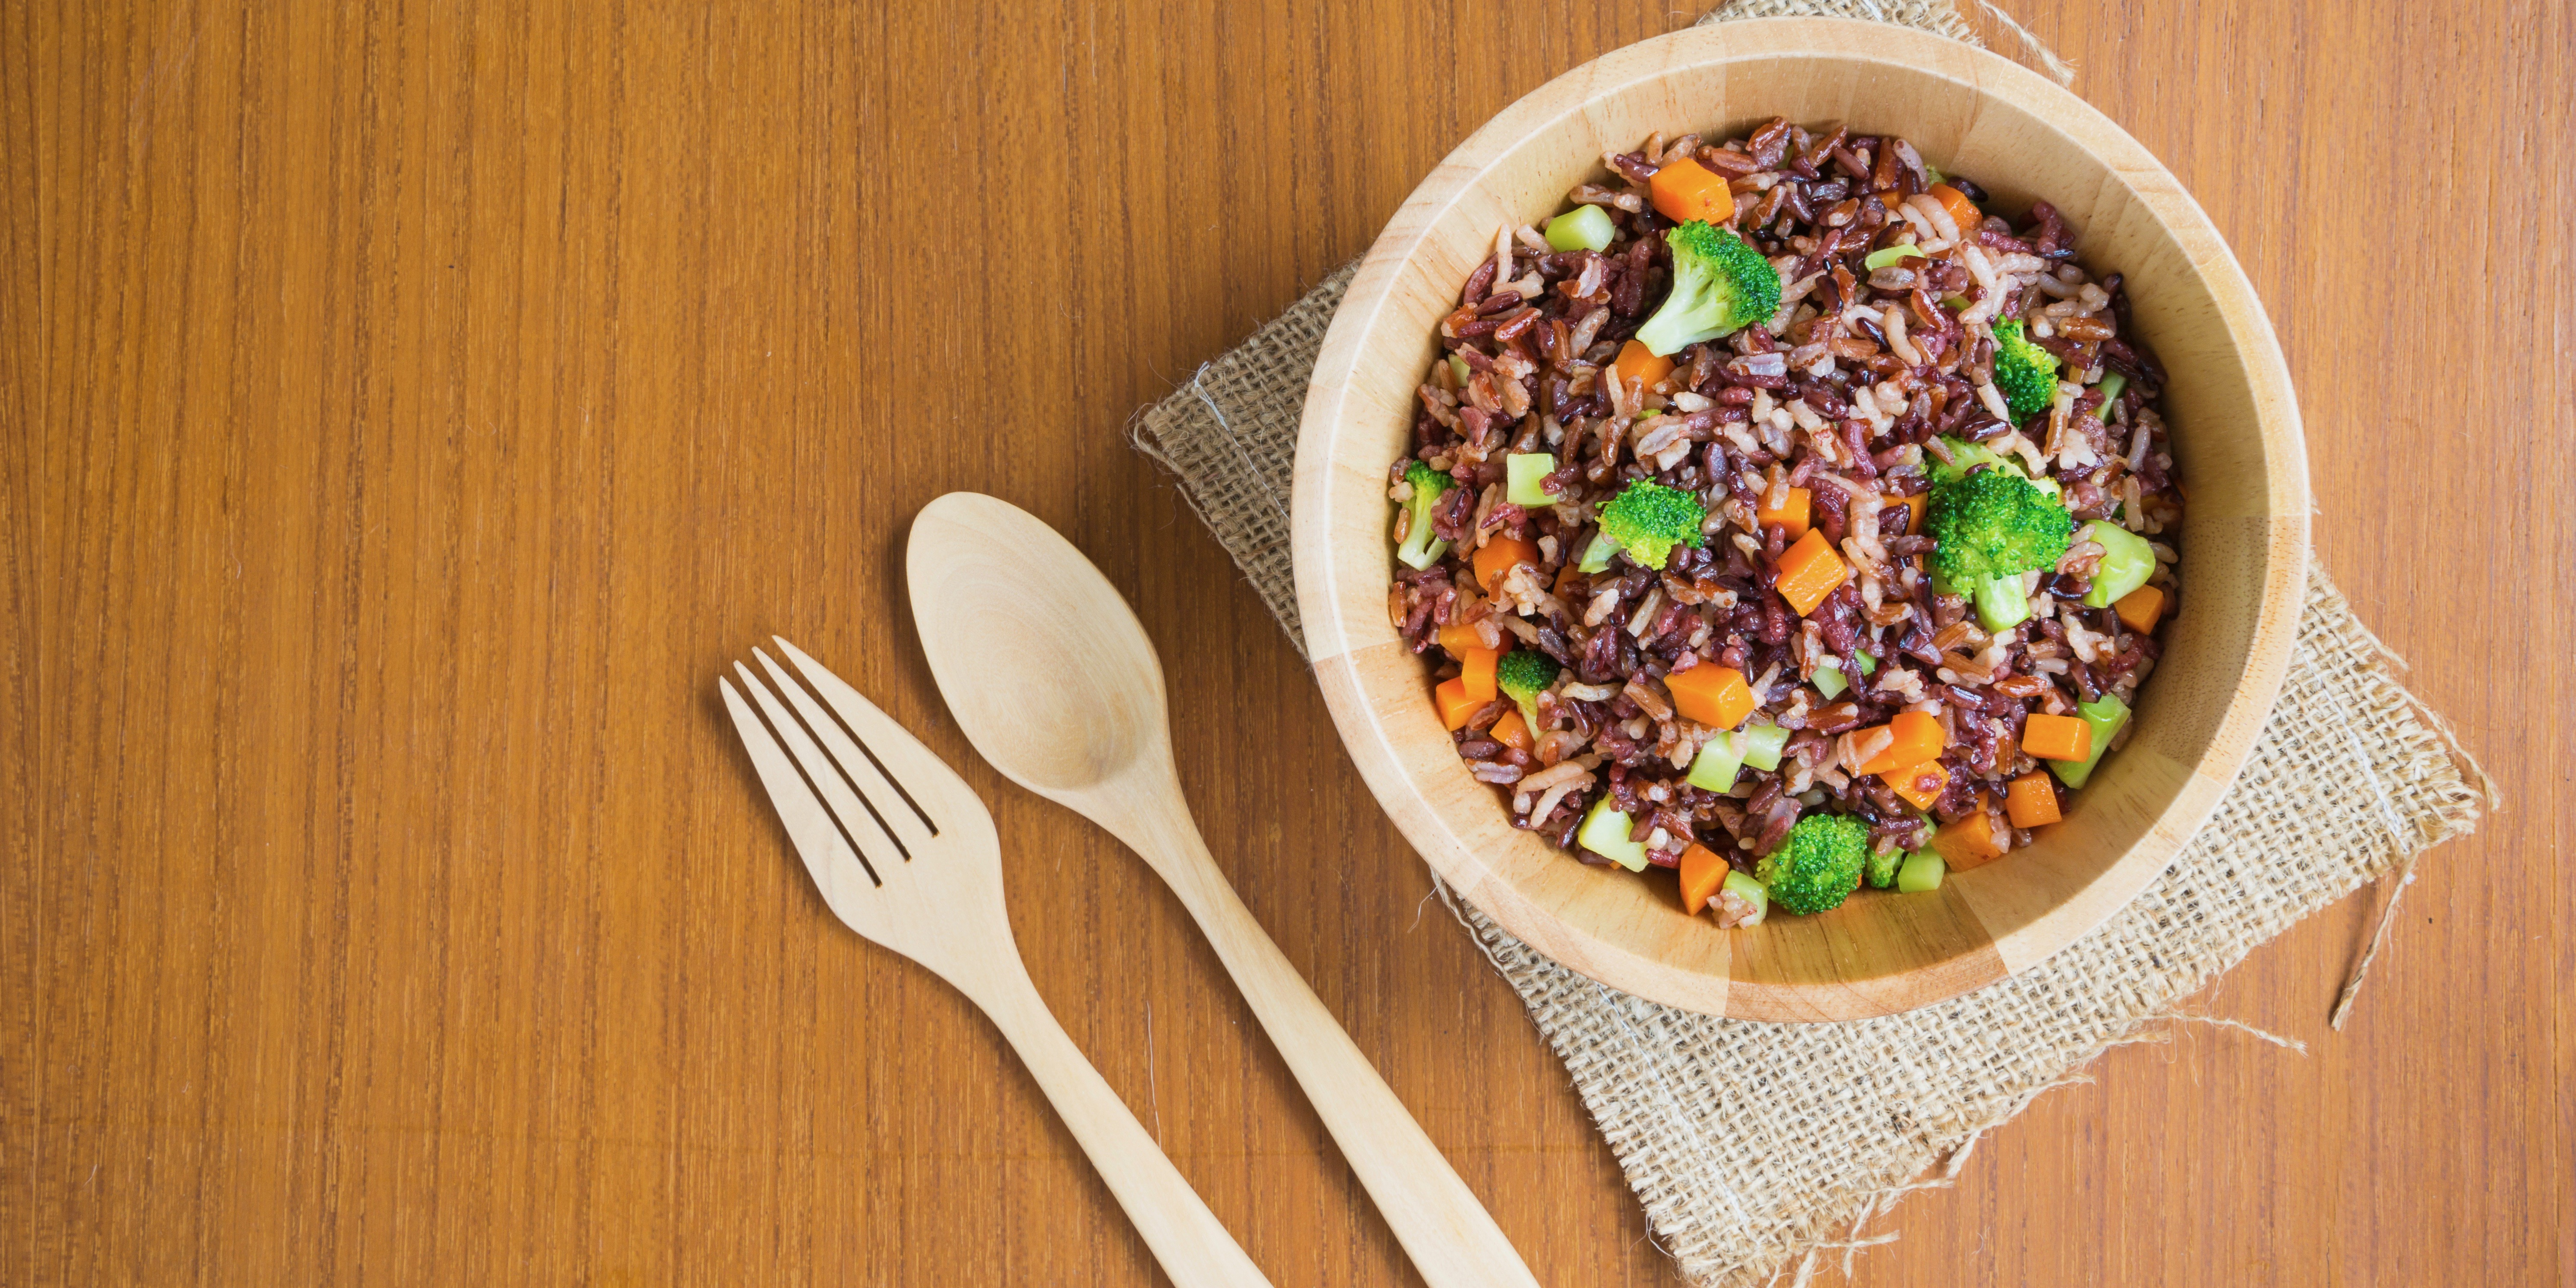 Brown Rice Salad photo